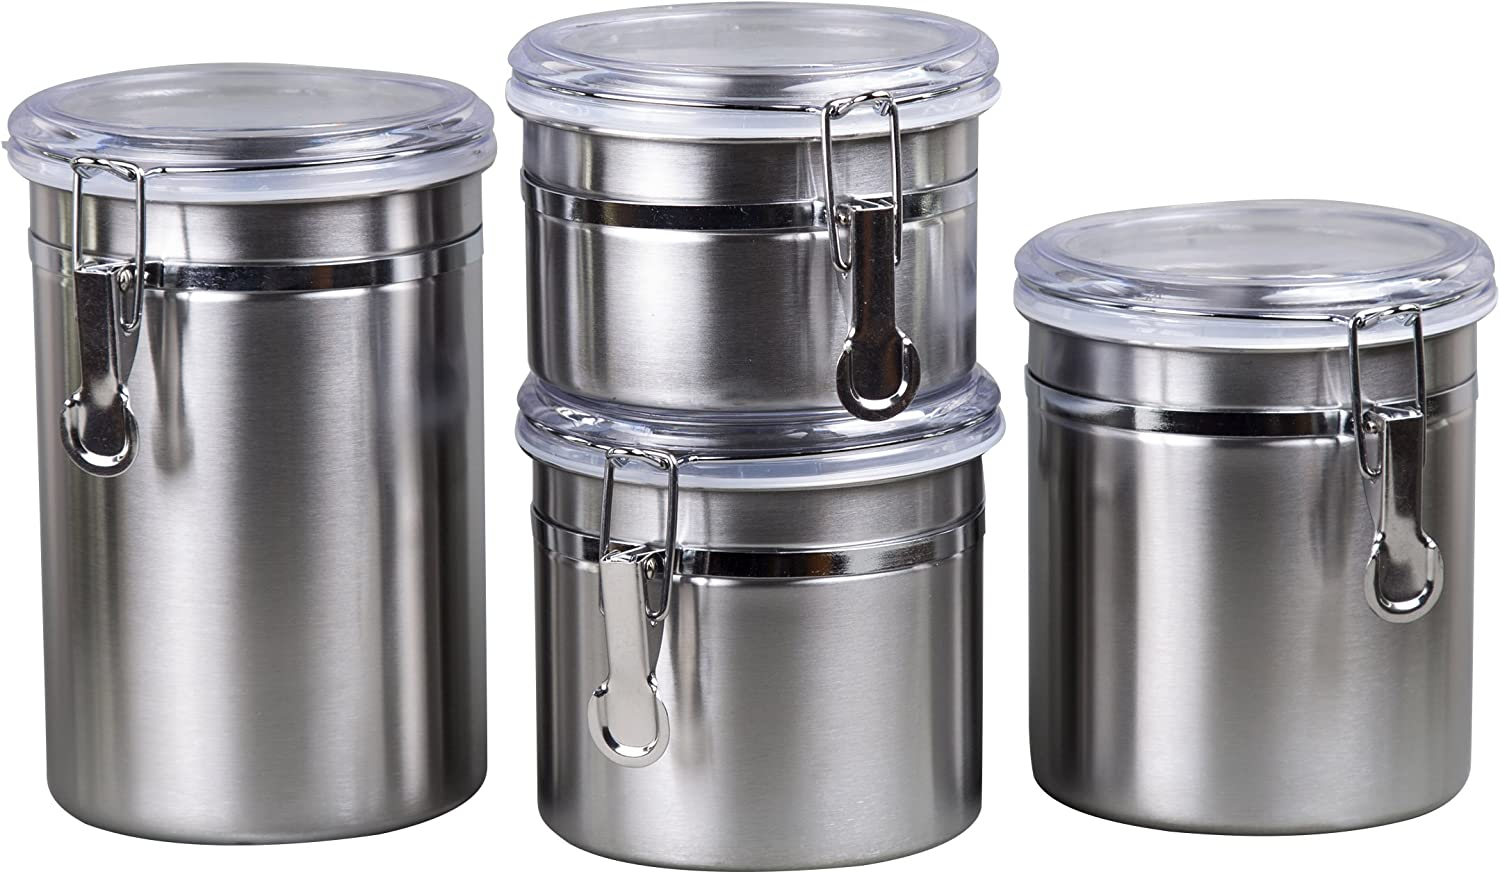 Creative Home 4-Piece Canister Container Set with Air Tight Lid and Locking Clamp, Stainless Steel